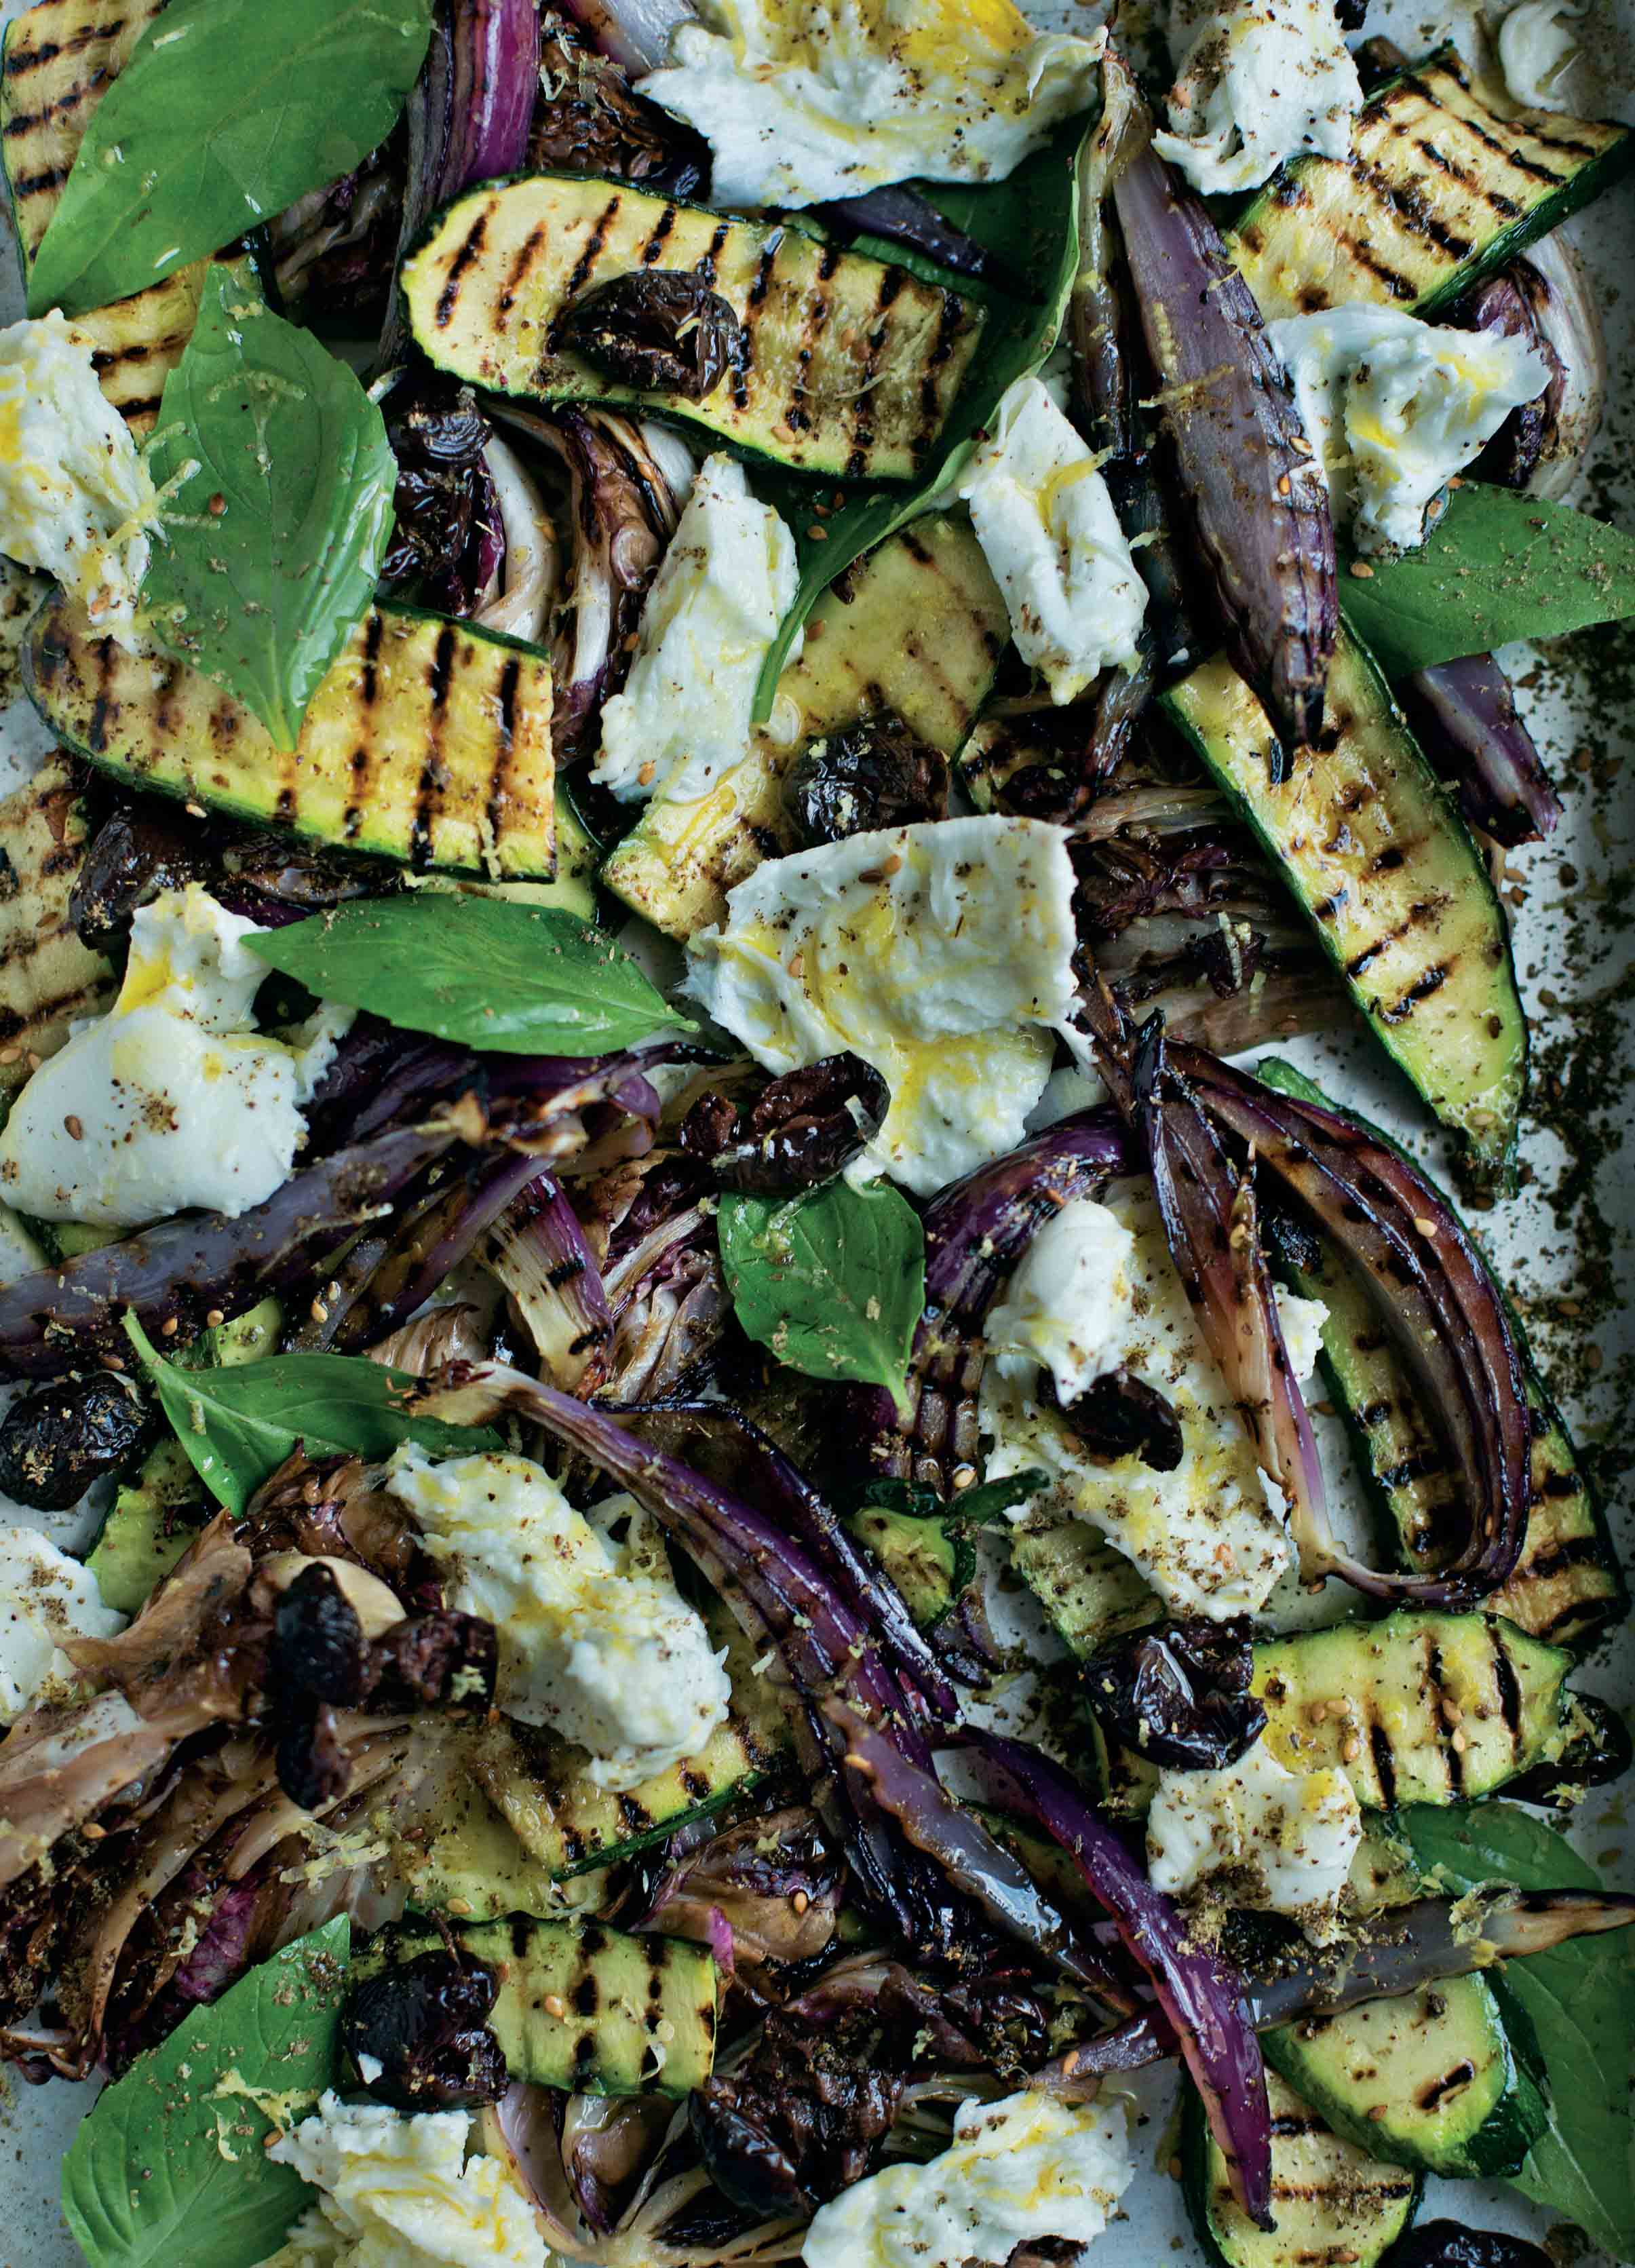 Grilled salad of courgette, radicchio, basil and mozzarella